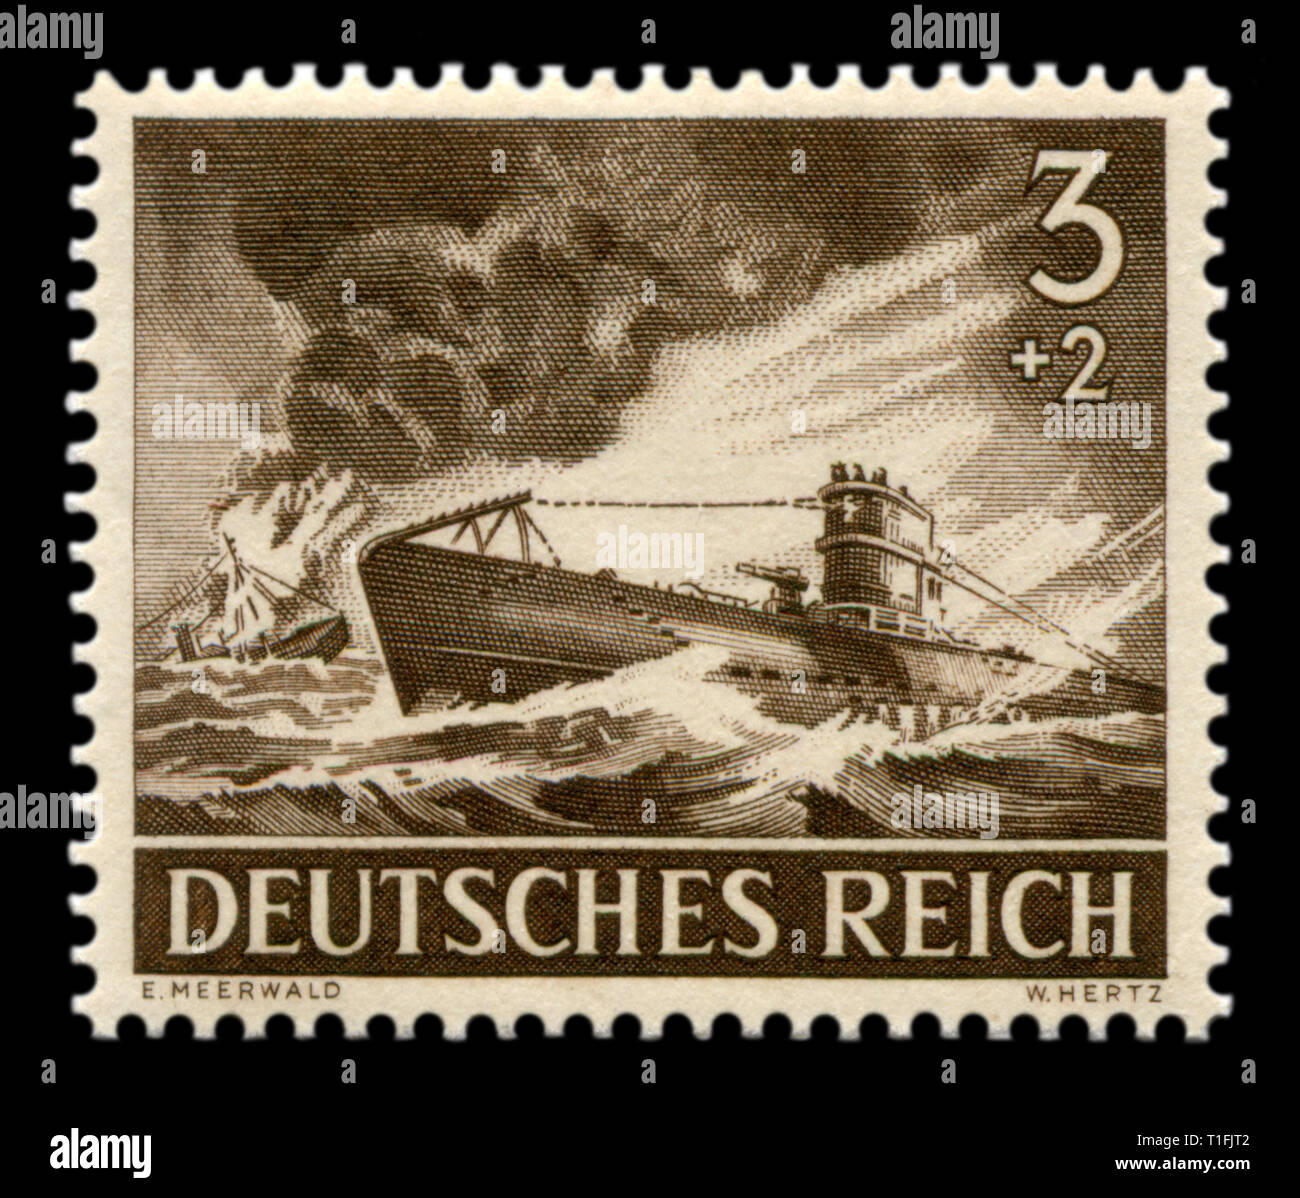 German historical stamp: u-boat type VII A, the most common submarine Kriegsmarine, the enemy ship is burning and sinking, Wehrmacht, memorial day 43 - Stock Image